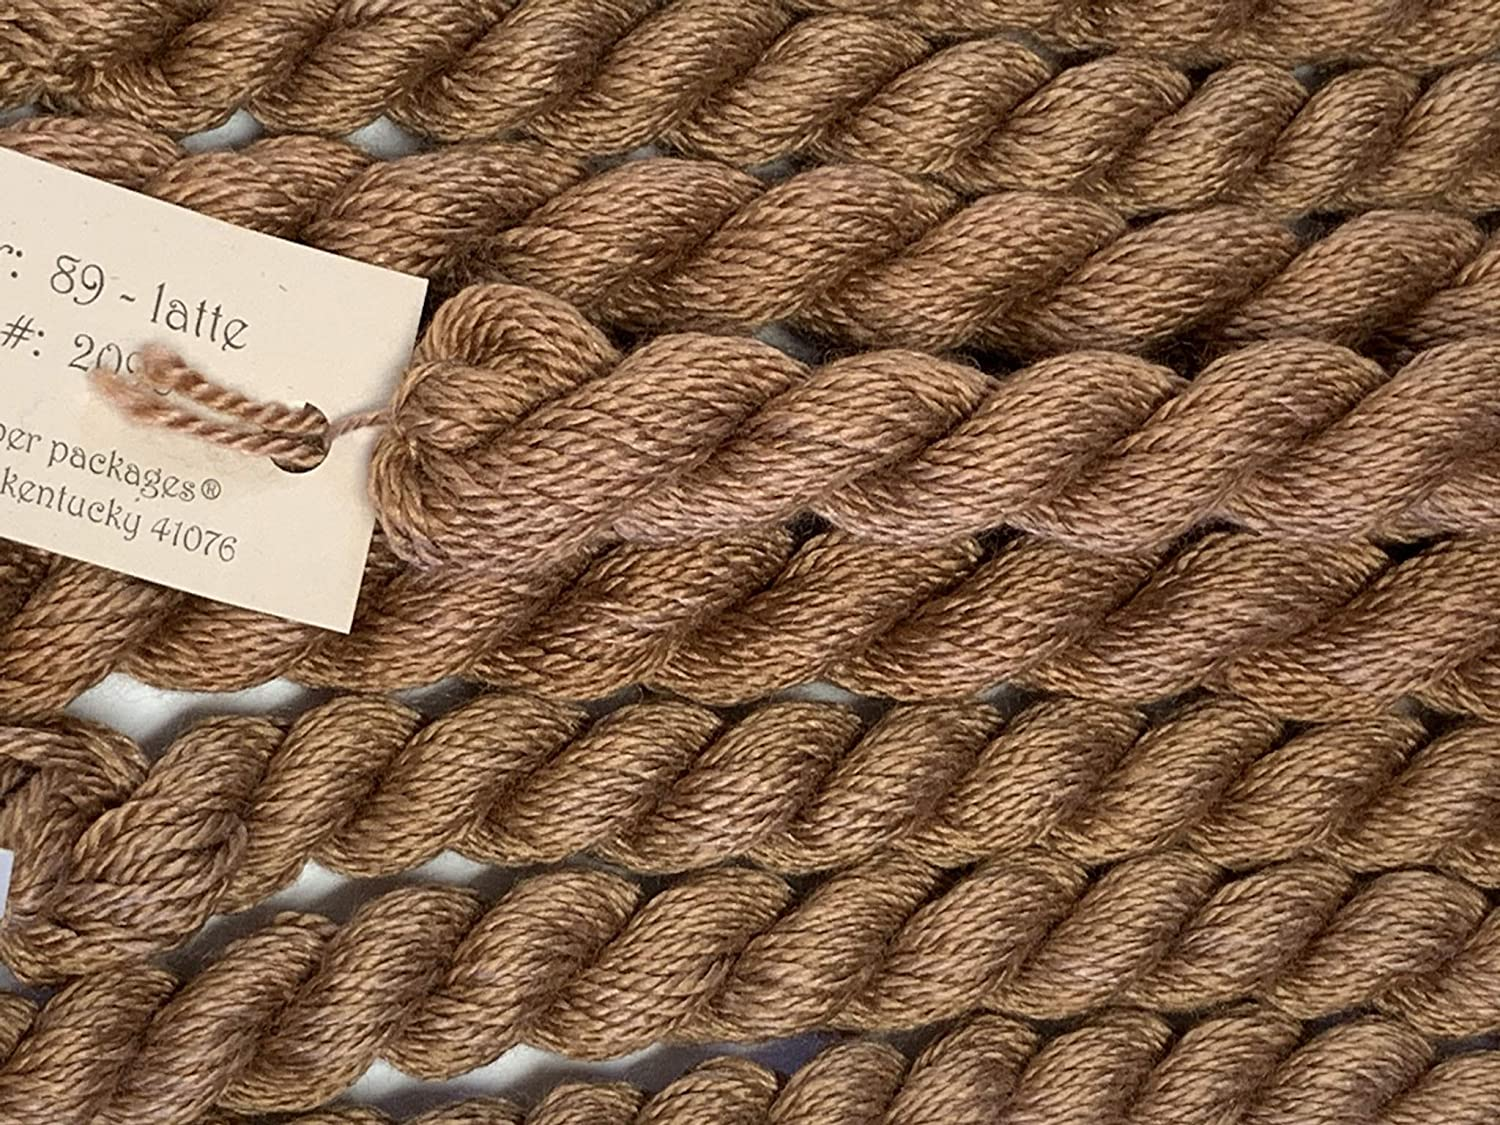 LATTE-89-1 SKEINS with This Listing SILK /& IVORY